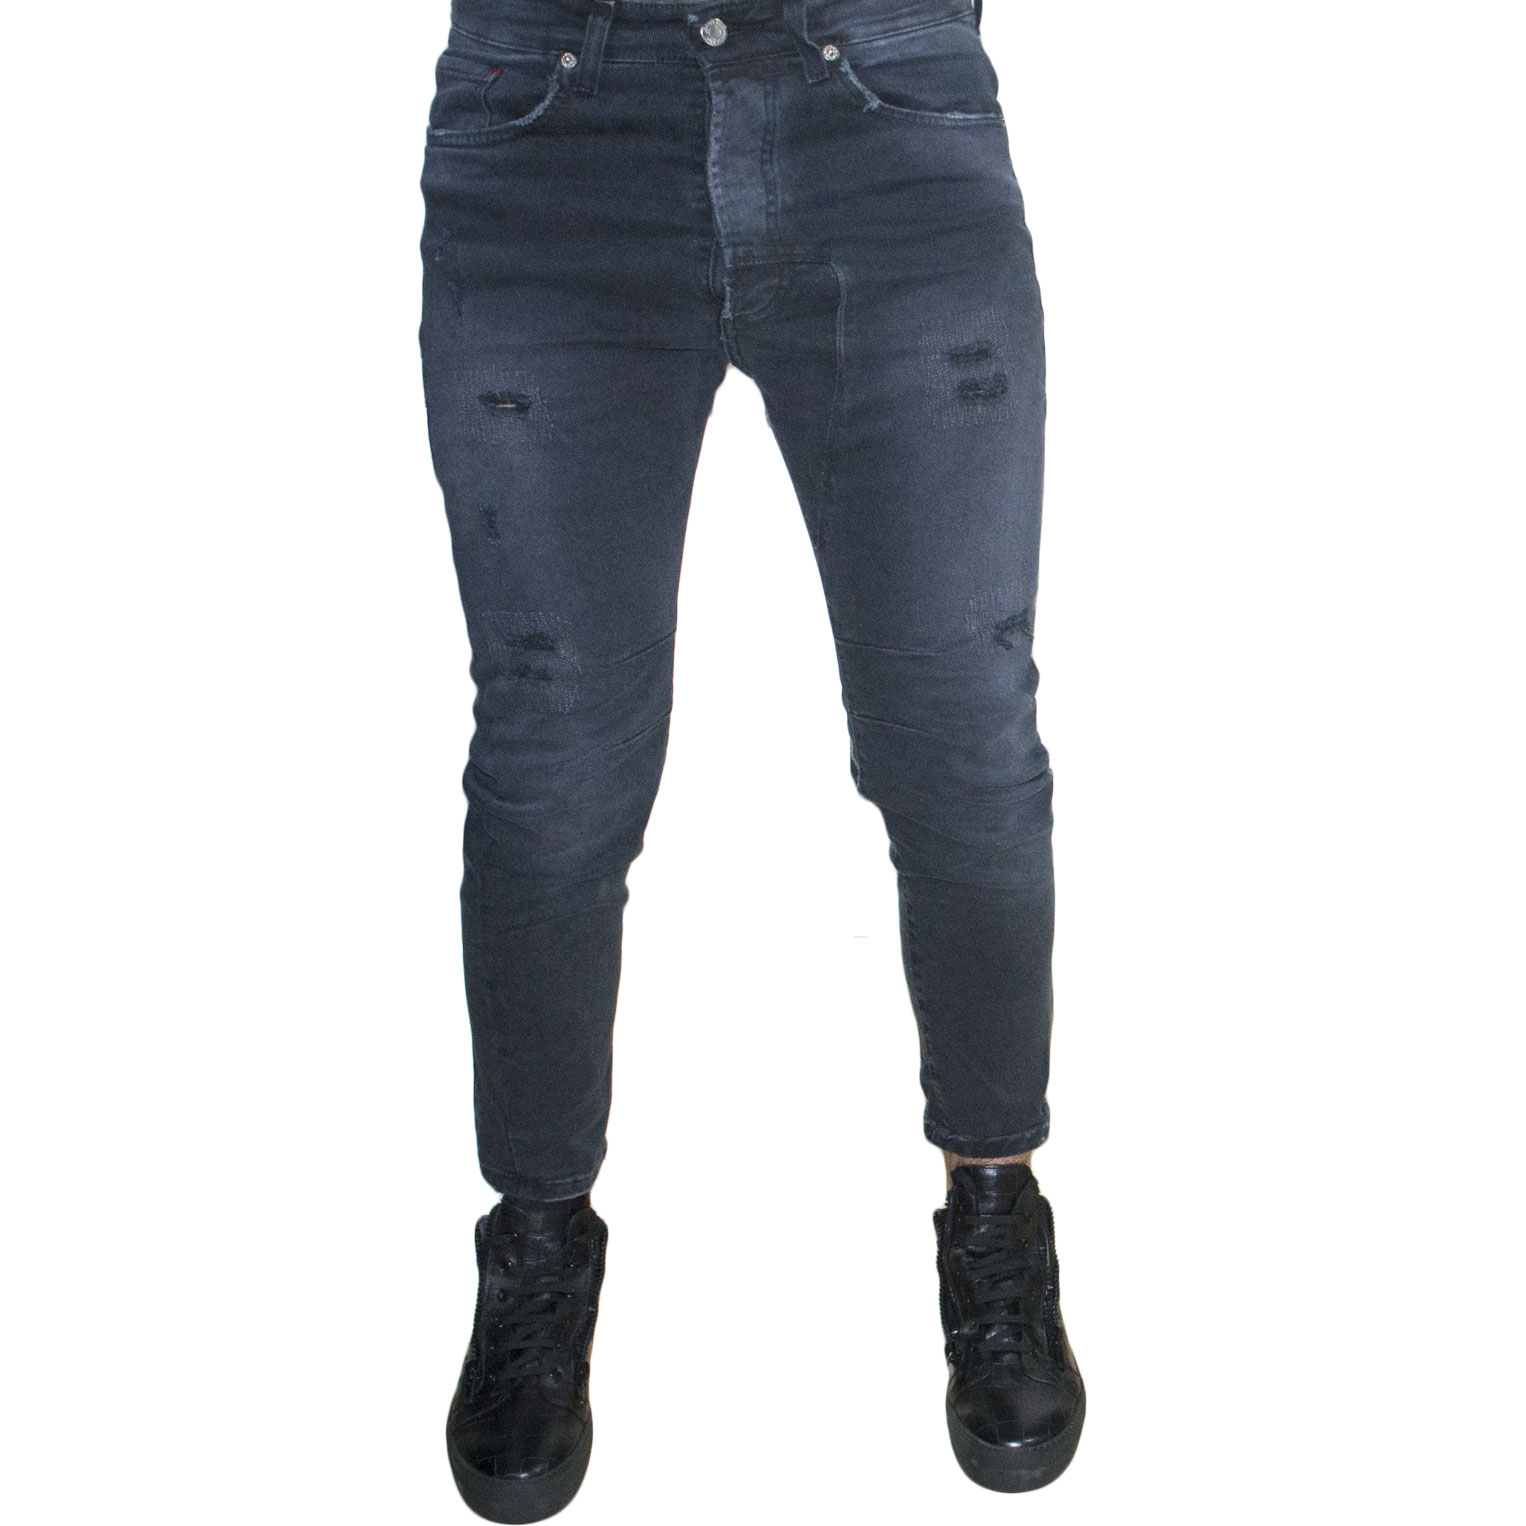 pantaloni jeans denim art3000 uomo man nero sfumato black strappi made in italy.